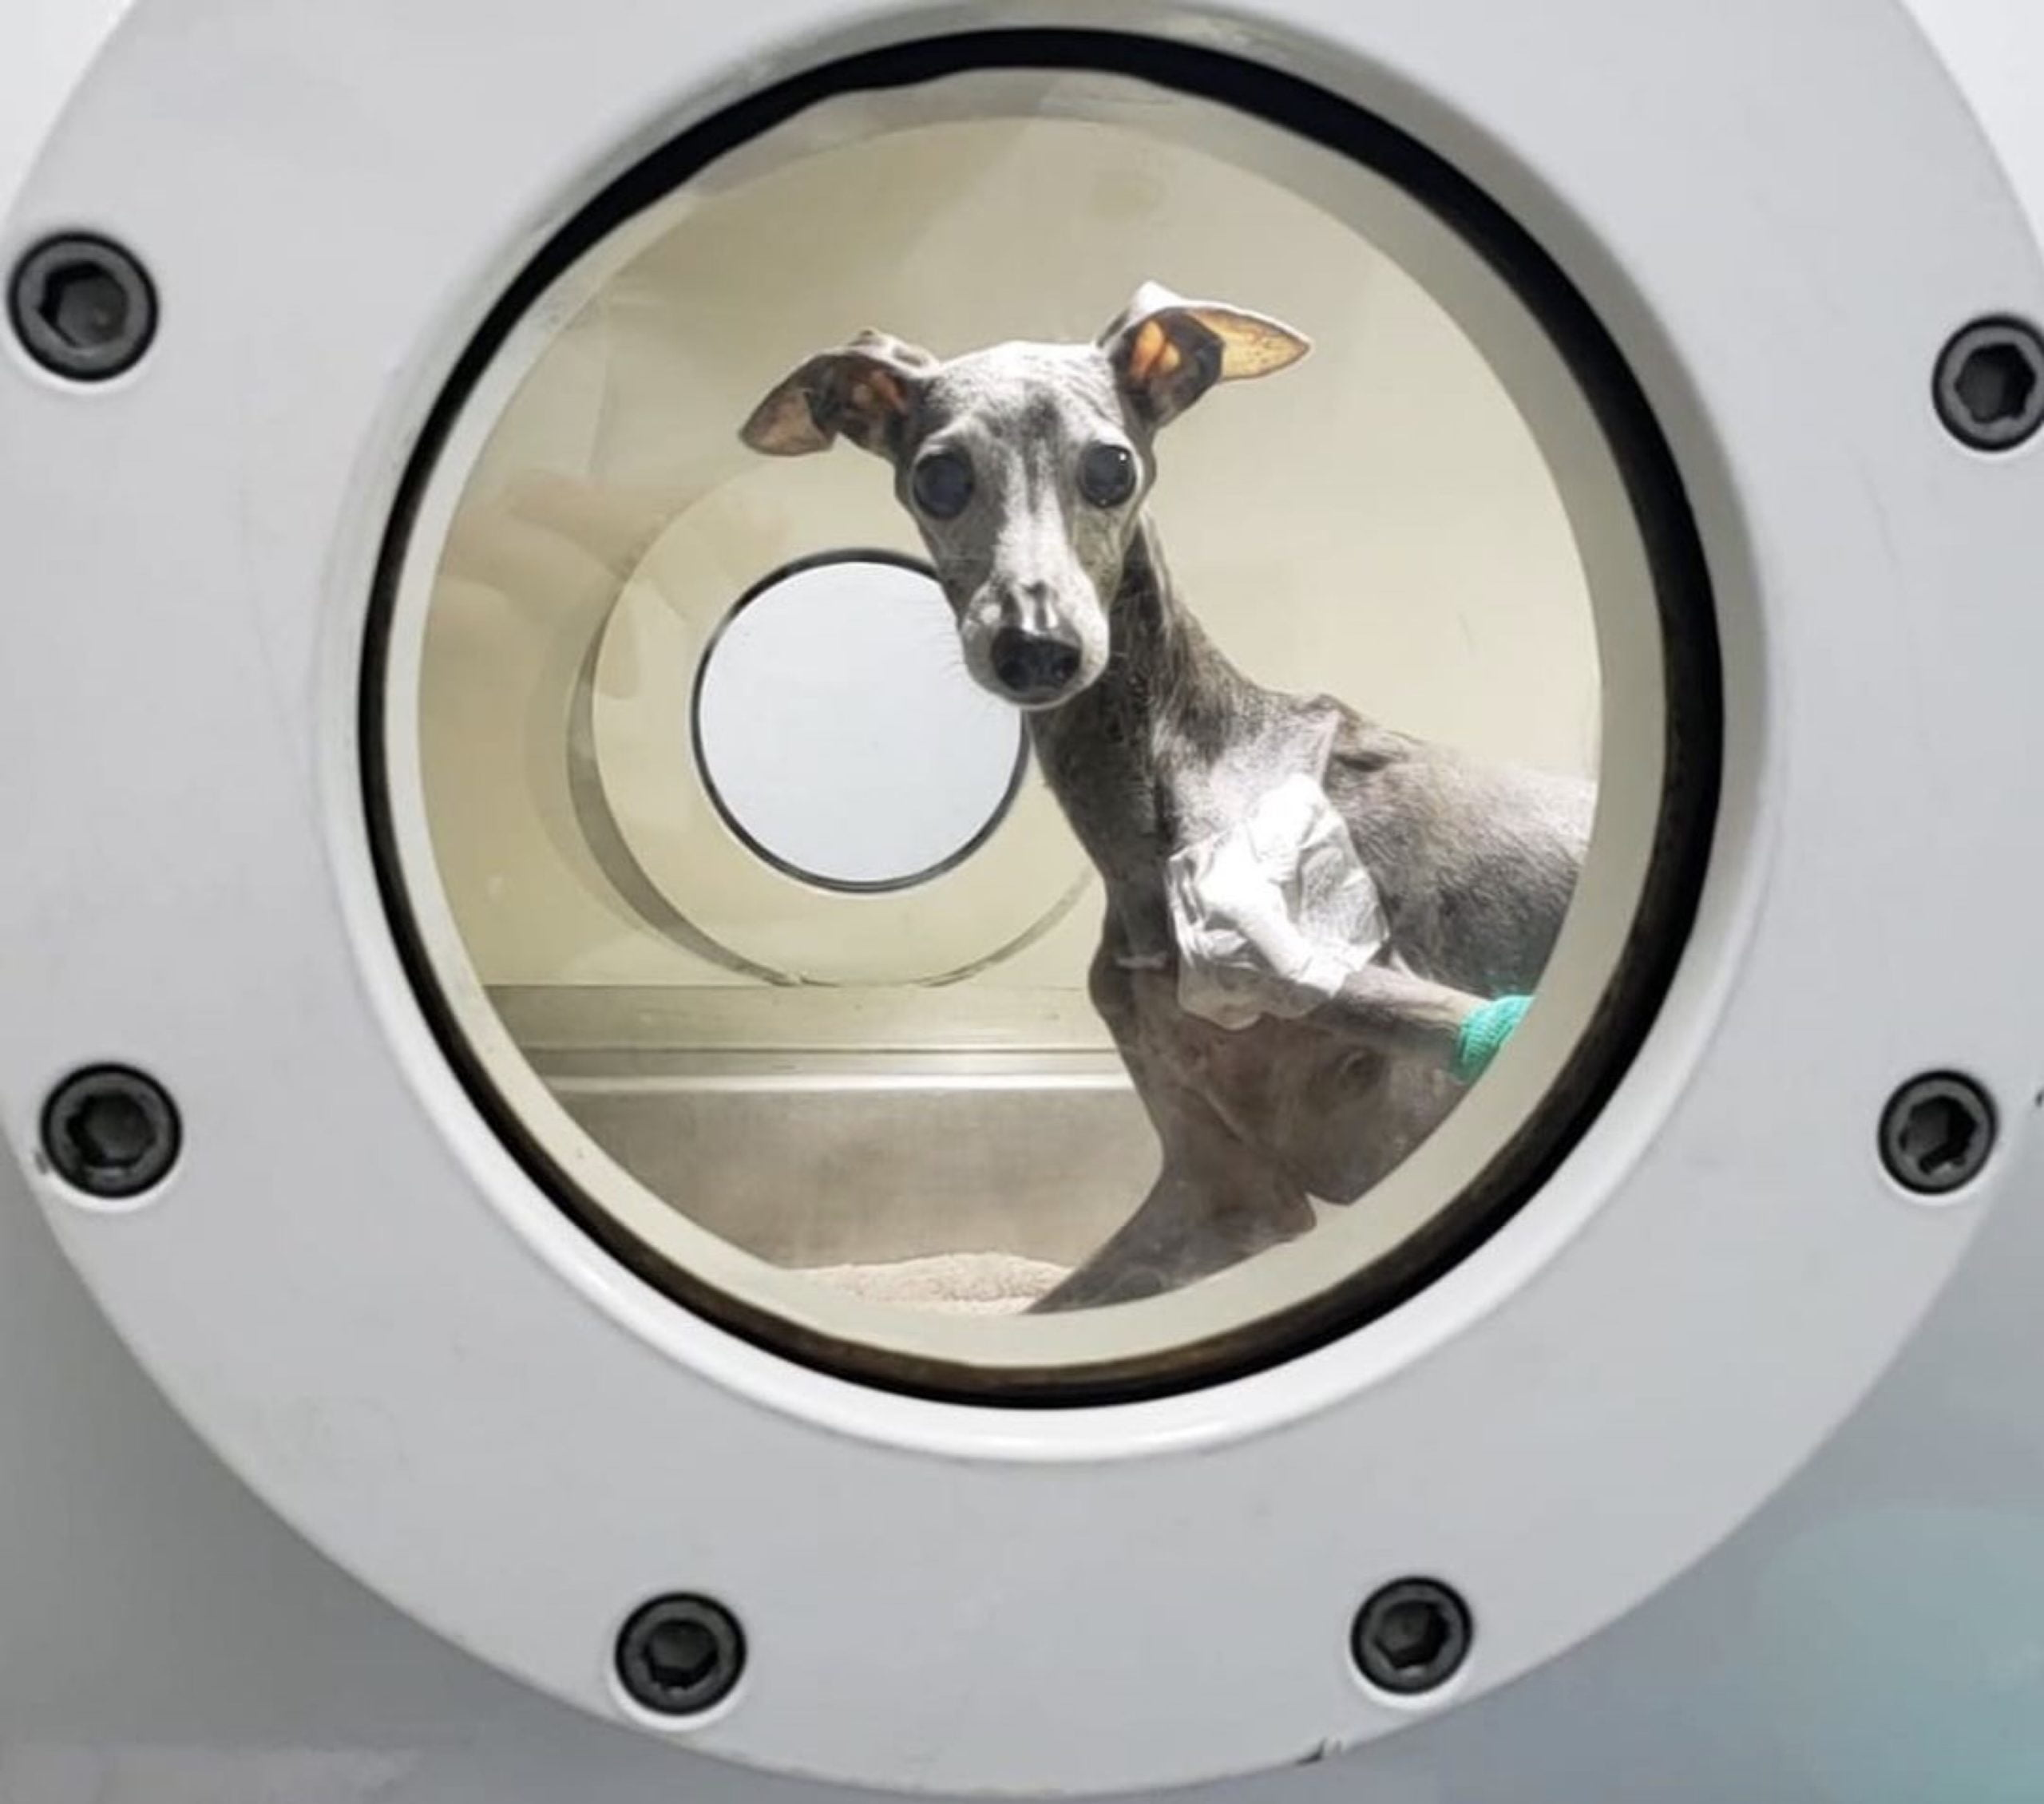 CEO of HVM Travels to Australia for First Veterinary Hyperbaric Chamber Installation and Looks to Help Animals Caught in Wildfires